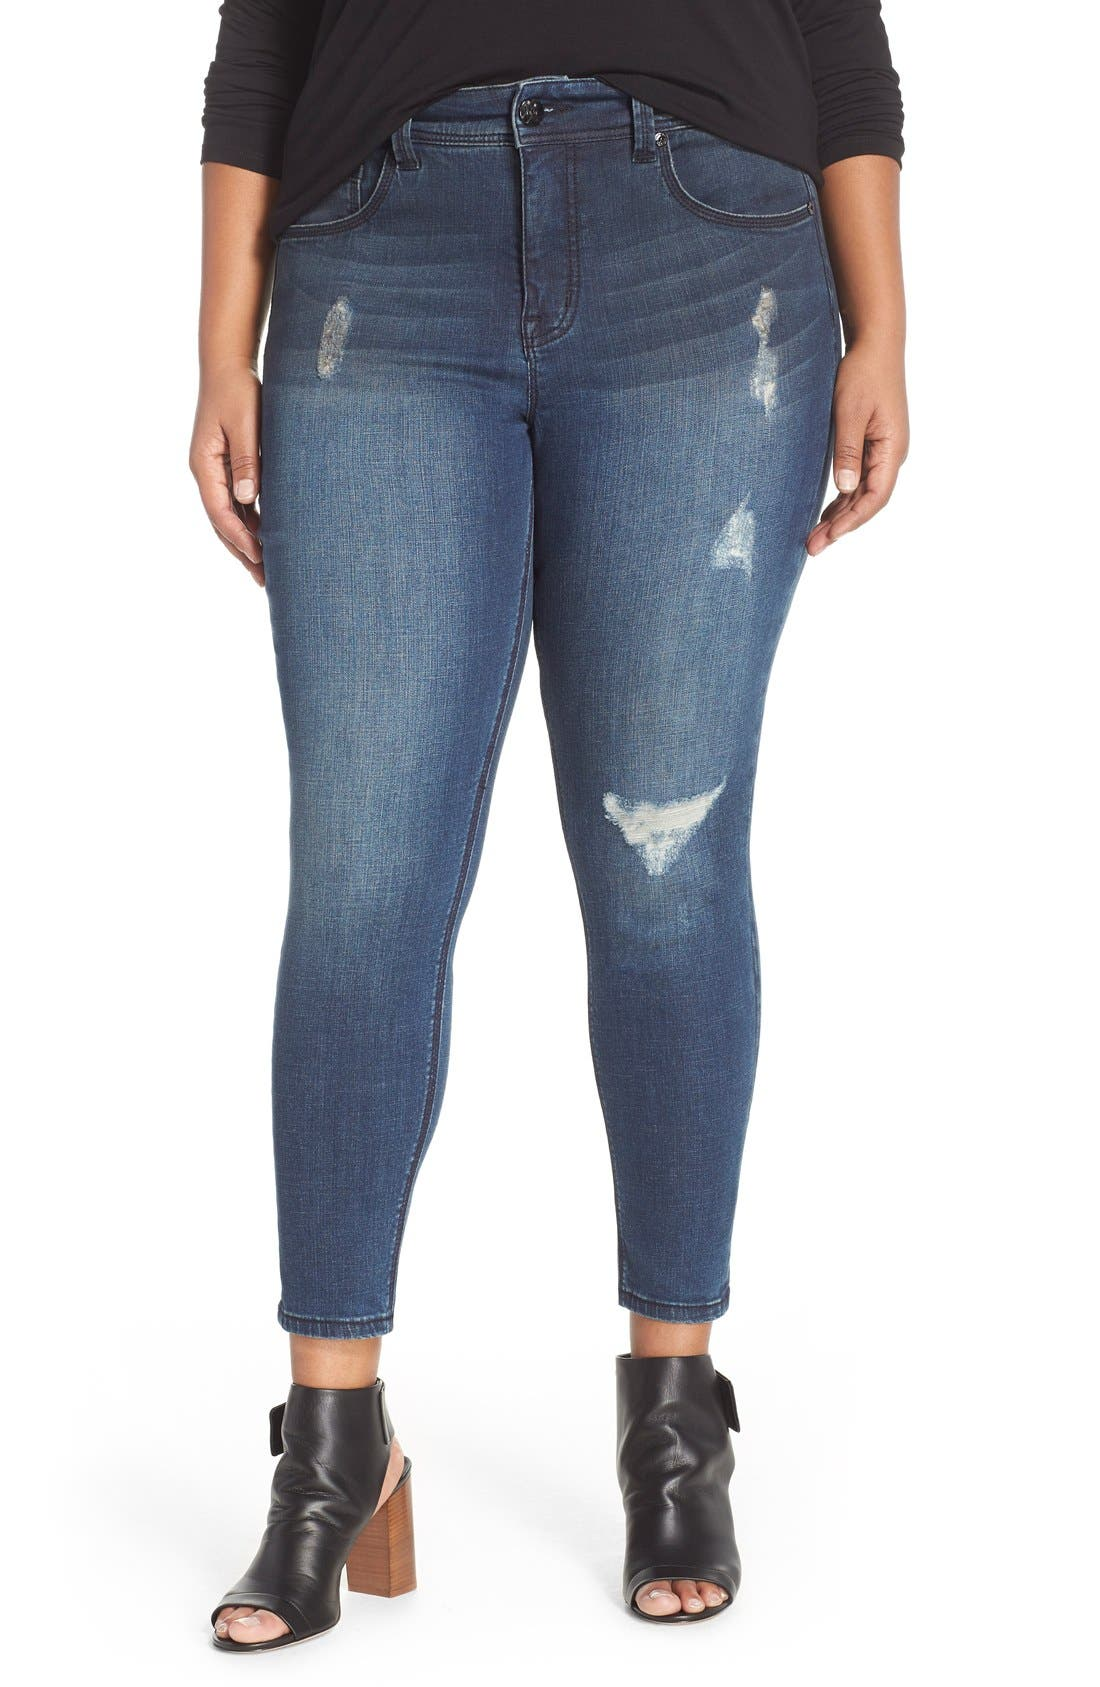 Melissa McCarthy Seven7 Distressed Pencil Leg Jeans (Rebel) (Plus Size)